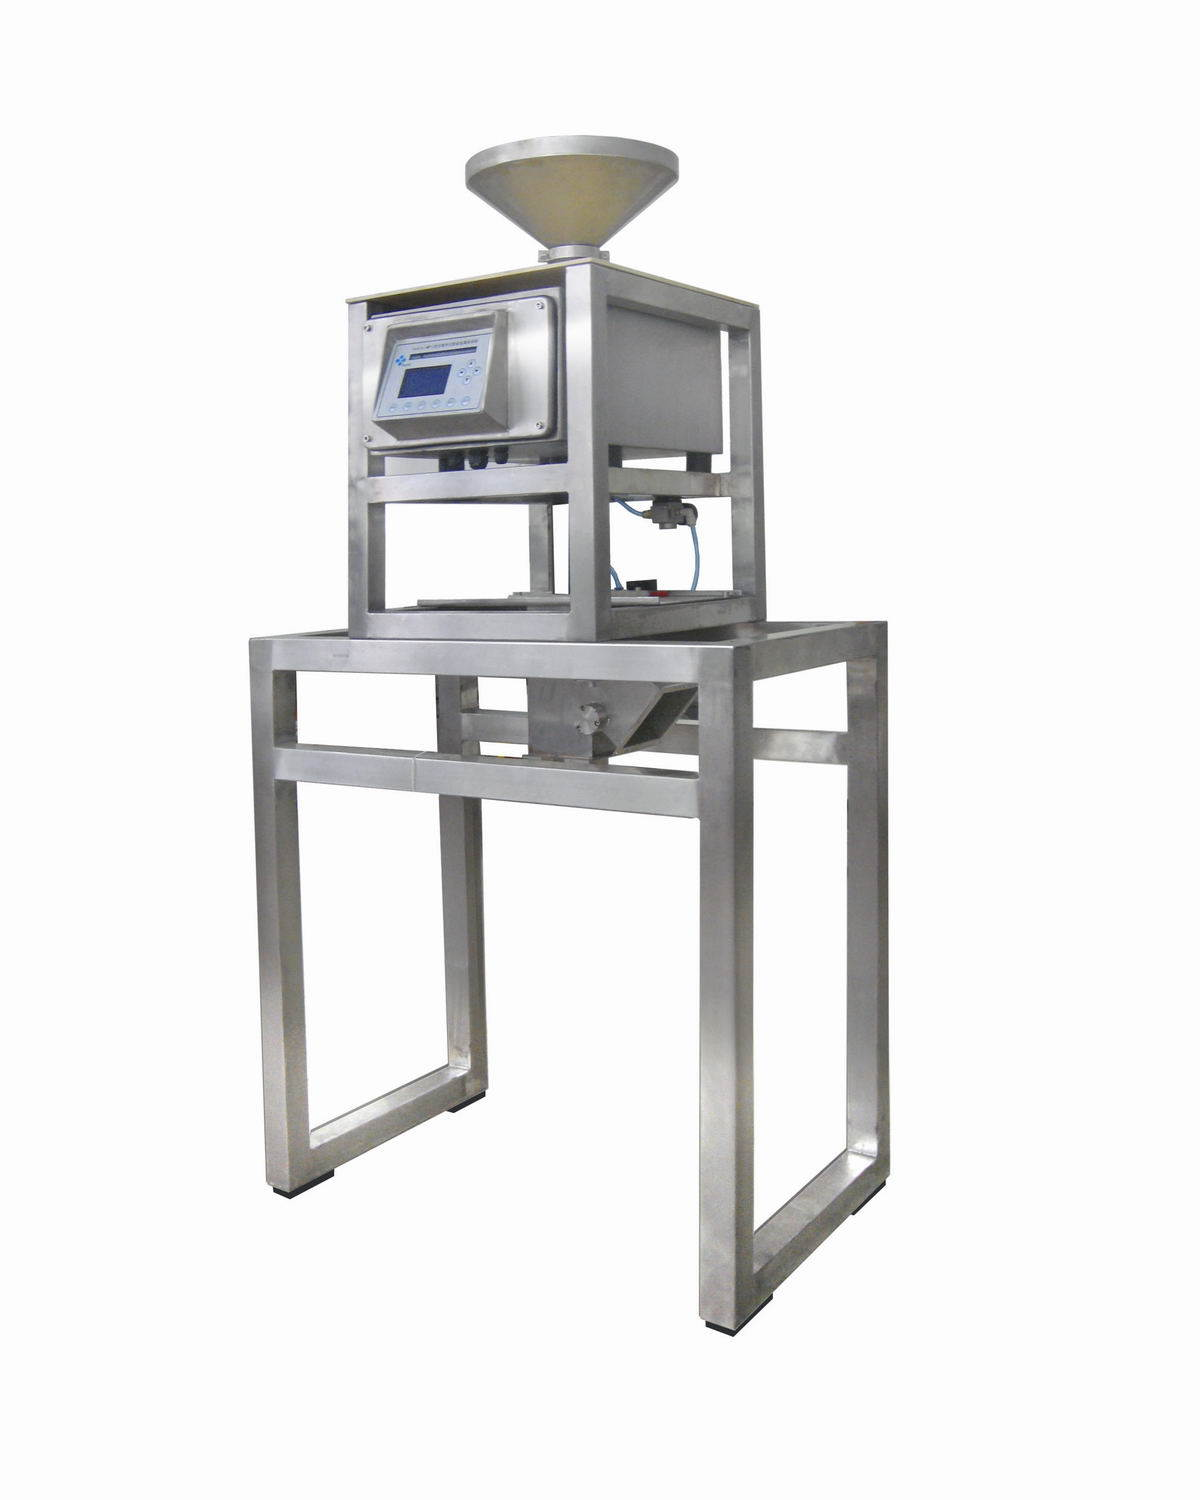 Metal Detector, Food Metal Detectors, Auto Conveyor Model Jl-IMD